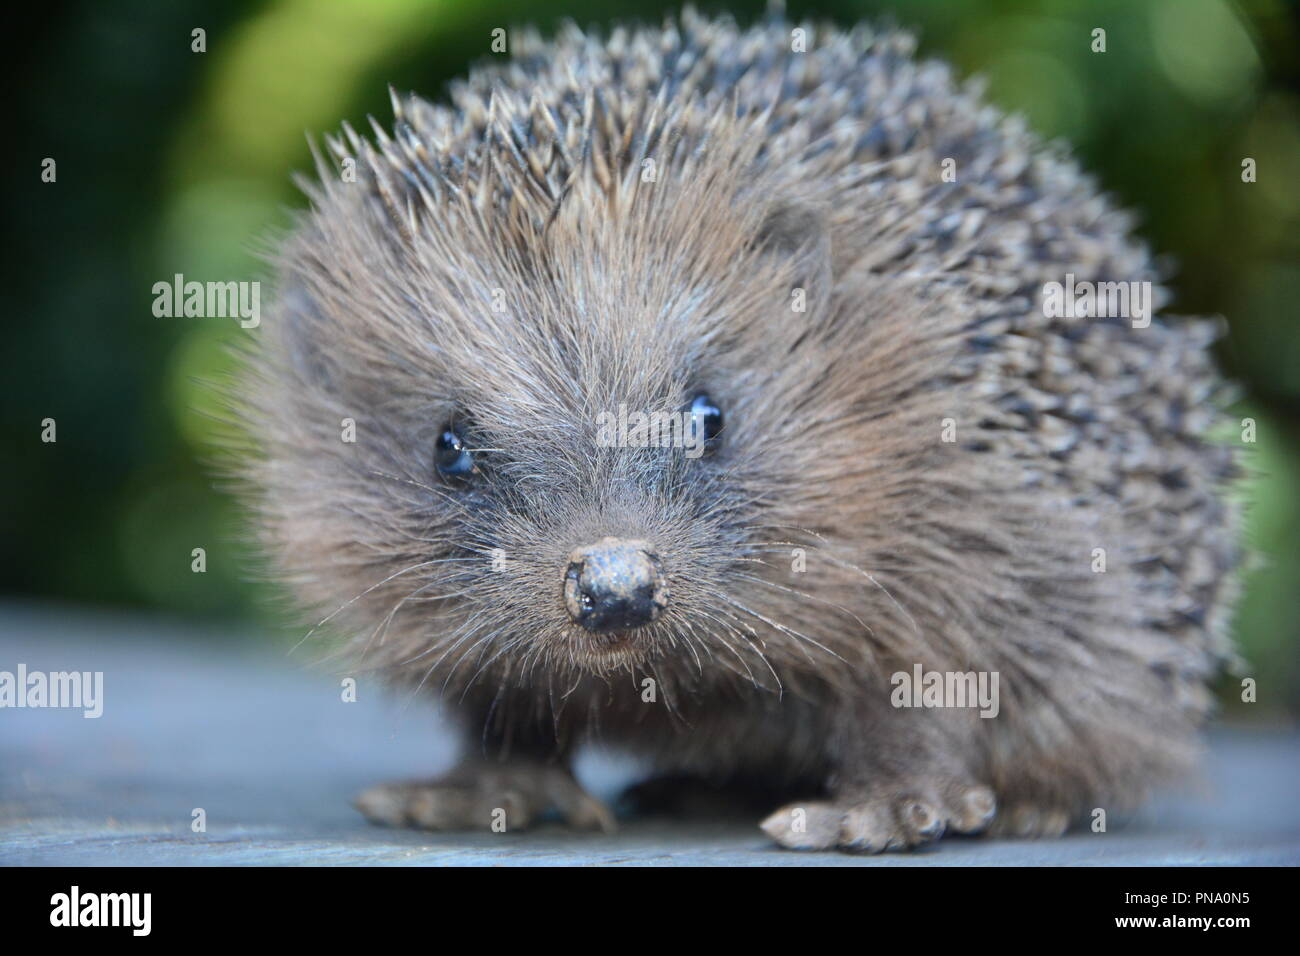 Close up from a hedgehog from the front  with  green nature - Stock Image